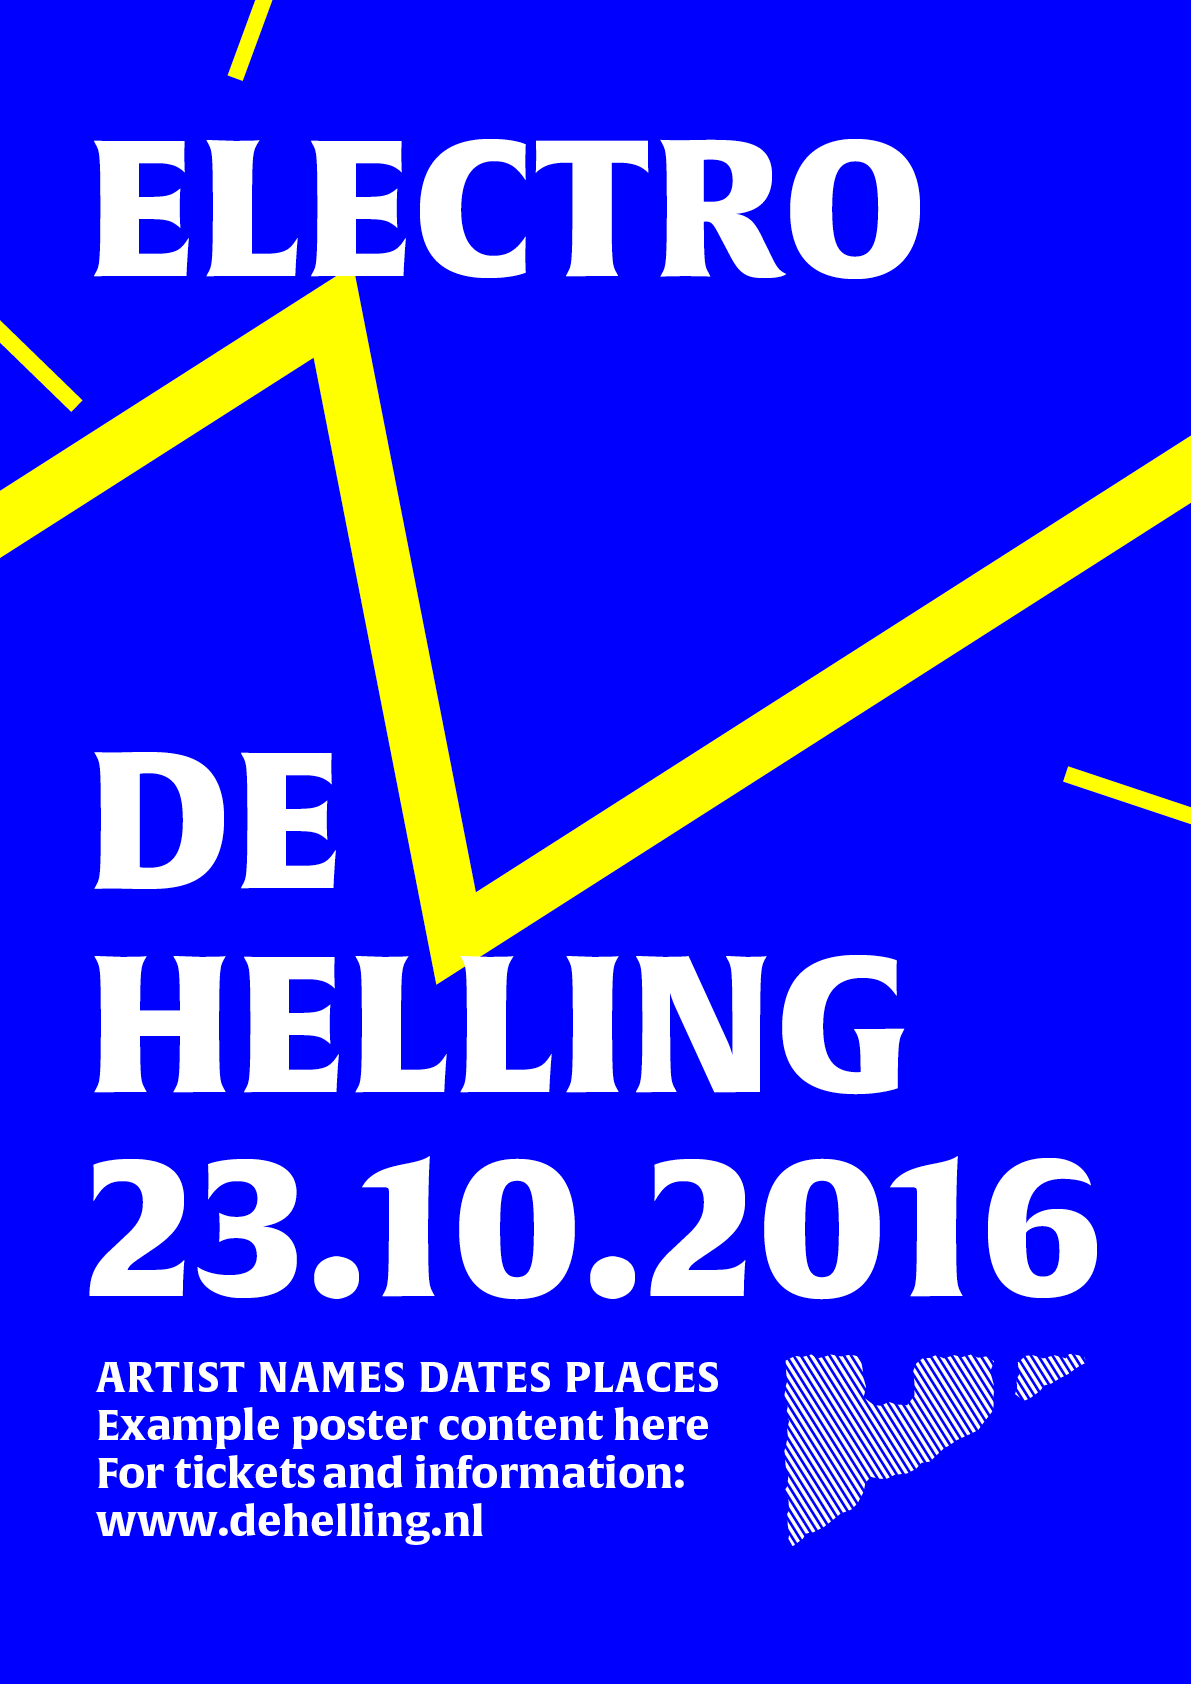 Example poster 'ELECTRO DE HELLING'